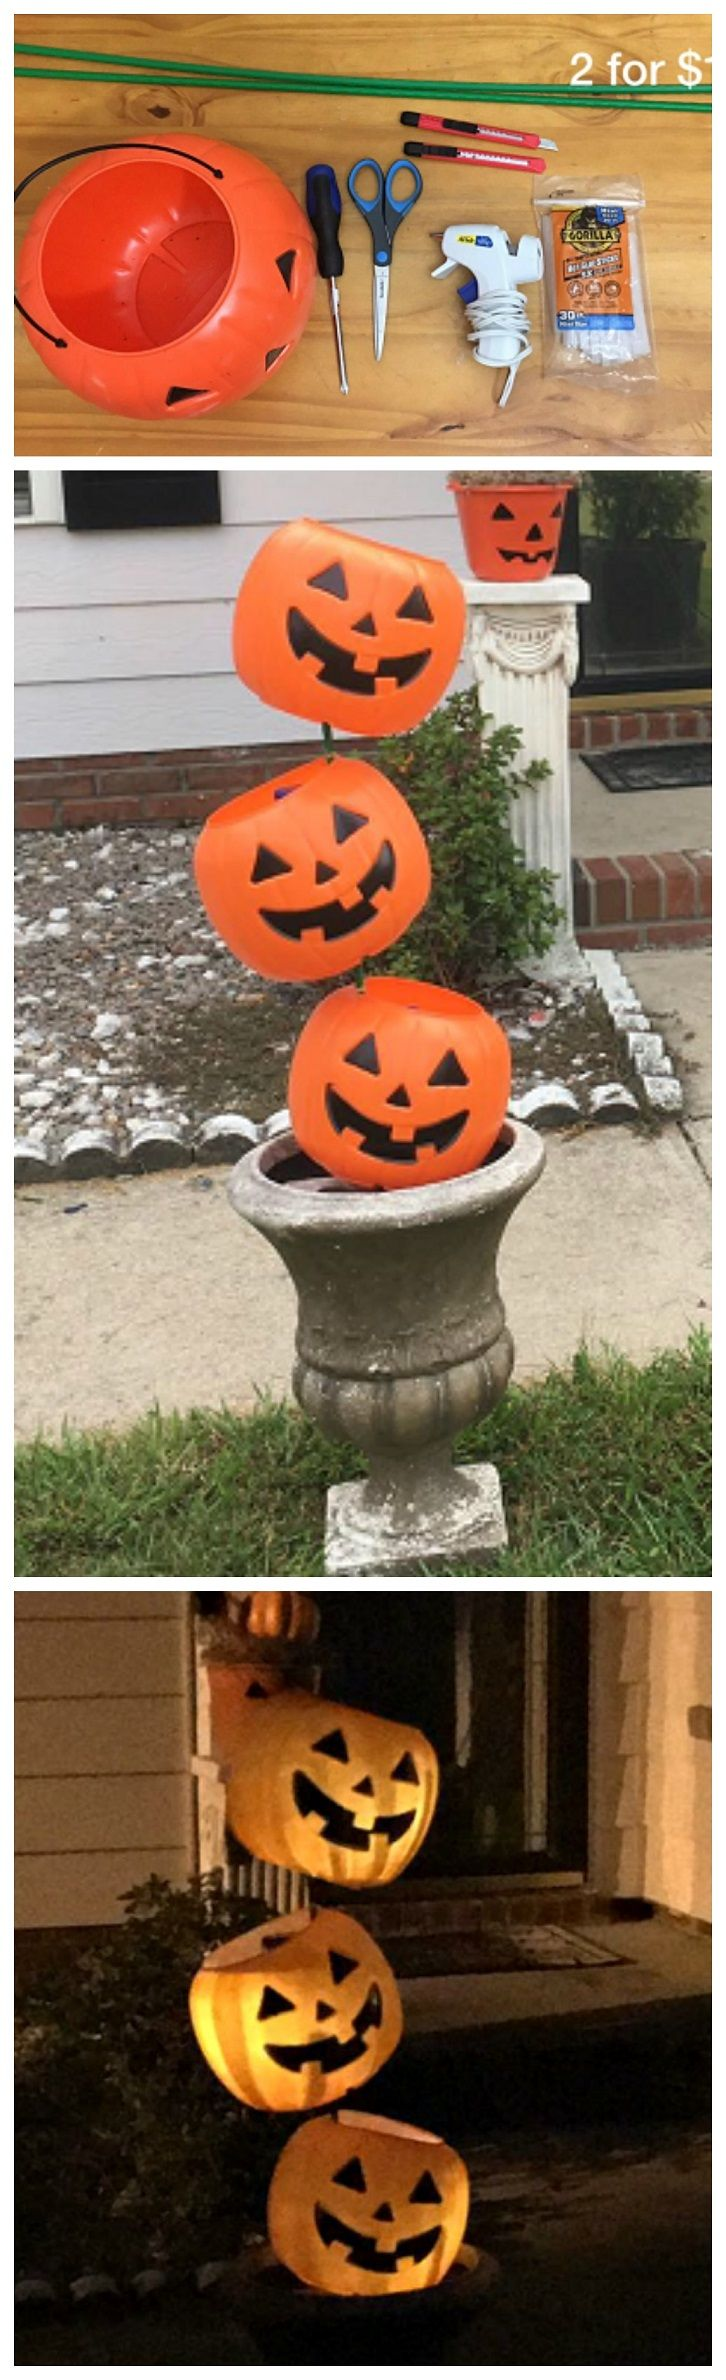 tipsy plastic pumpkin decoration homemade halloween - Homemade Halloween Centerpieces